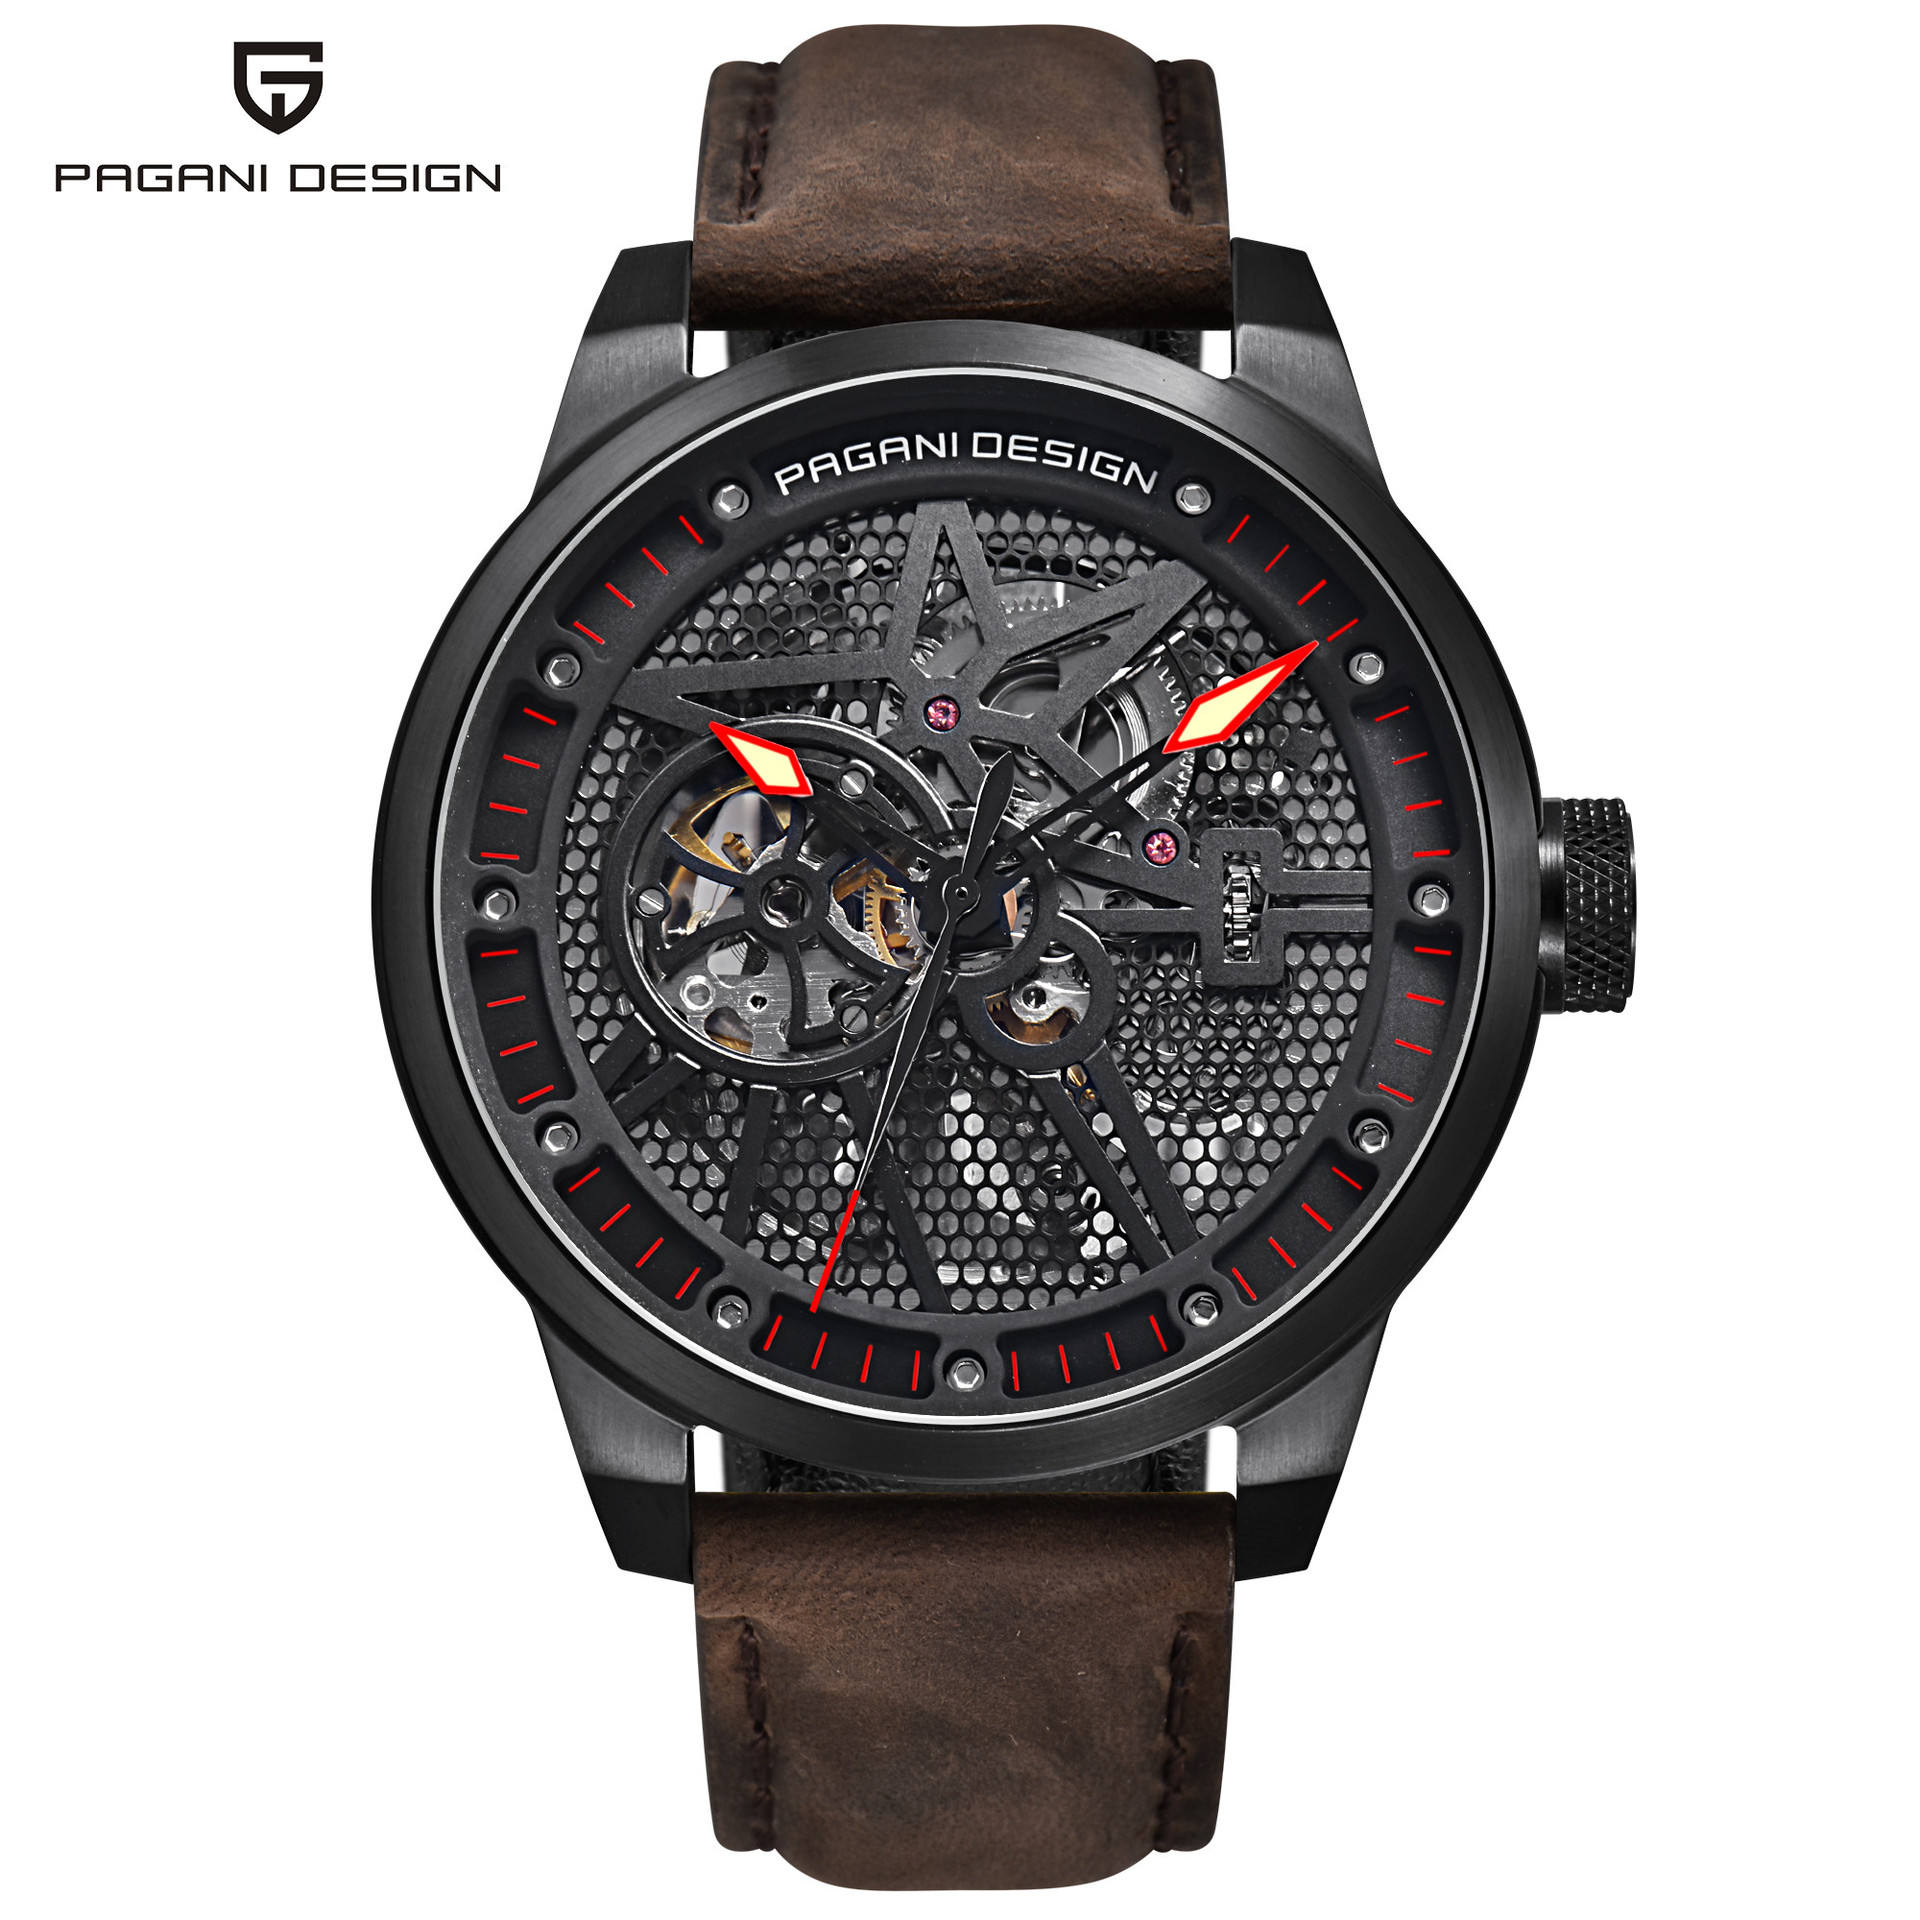 Pagani Design 1625 Skeleton Mechanical Watch Men Automatic Hollow Fashion Luxury Brand All Stainless Steel Sport Watch